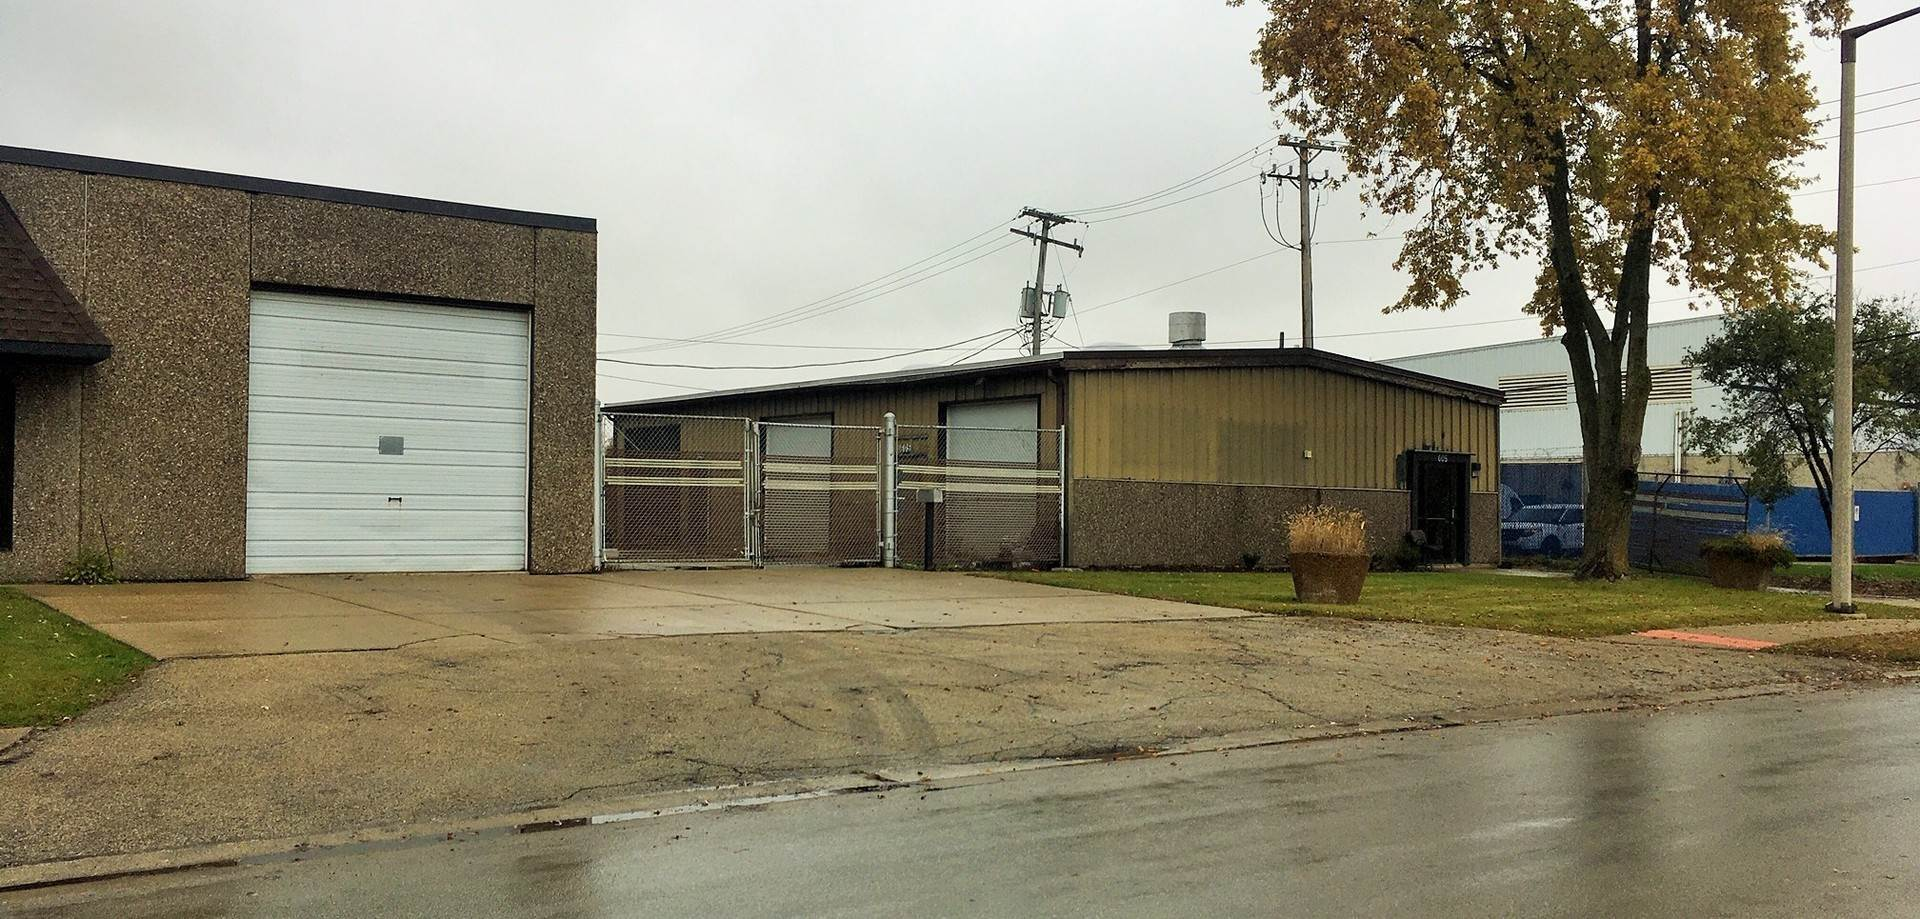 Commercial à 605 E Jefferson Street Bensenville, Illinois 60106 États-Unis